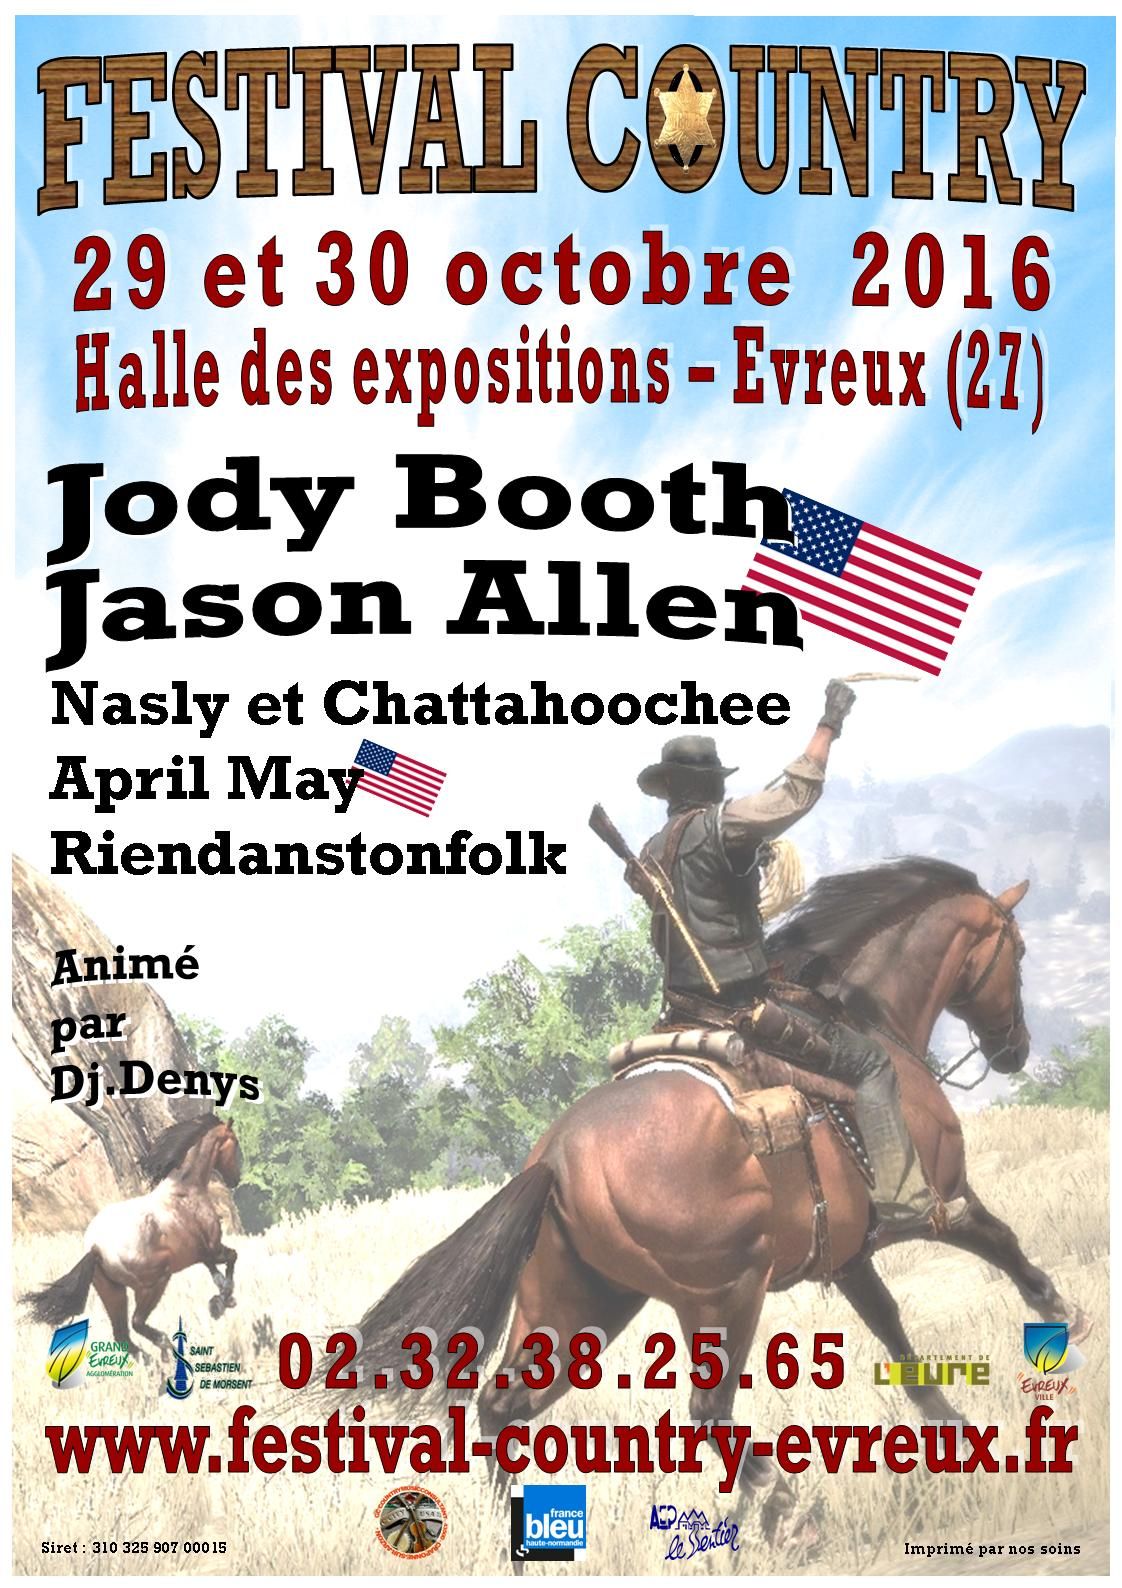 FESTIVAL COUNTRY EVREUX